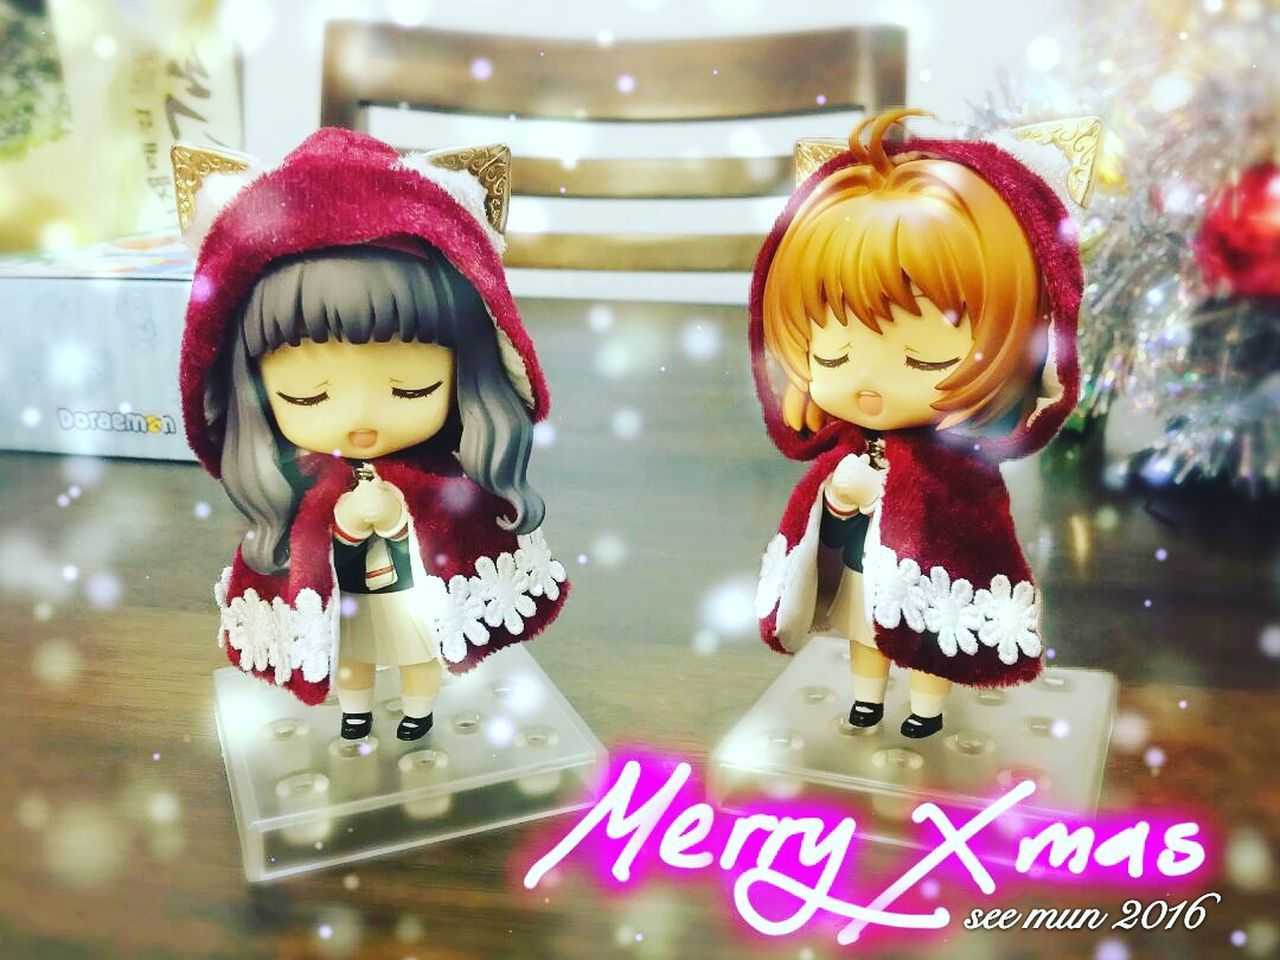 Christmas Nendoroid Nendophotography Nendoroidphotography Nendoroids Clamp Sakura Cardcaptorsakura Sakurakinomoto Tomoyo Japan Anime Animation Manga blessing First Eyeem Photo